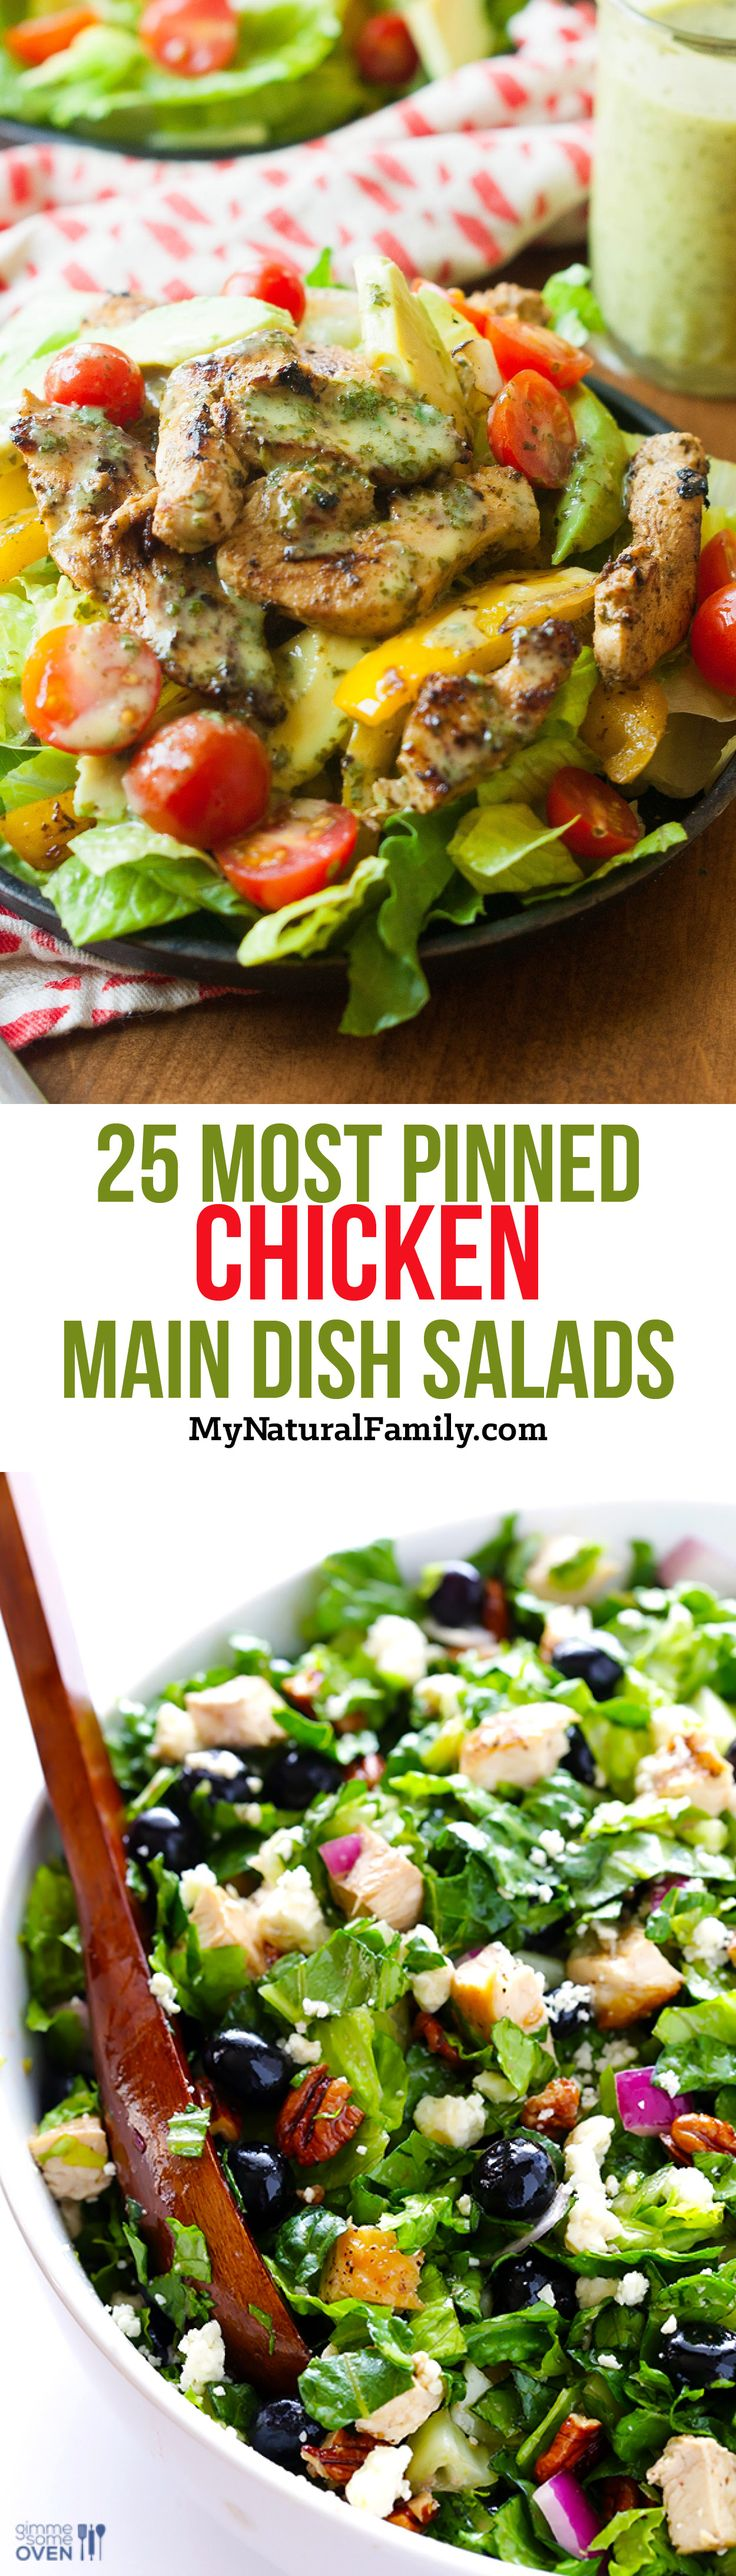 25 Most Pinned Main Dish Salads with Chicken